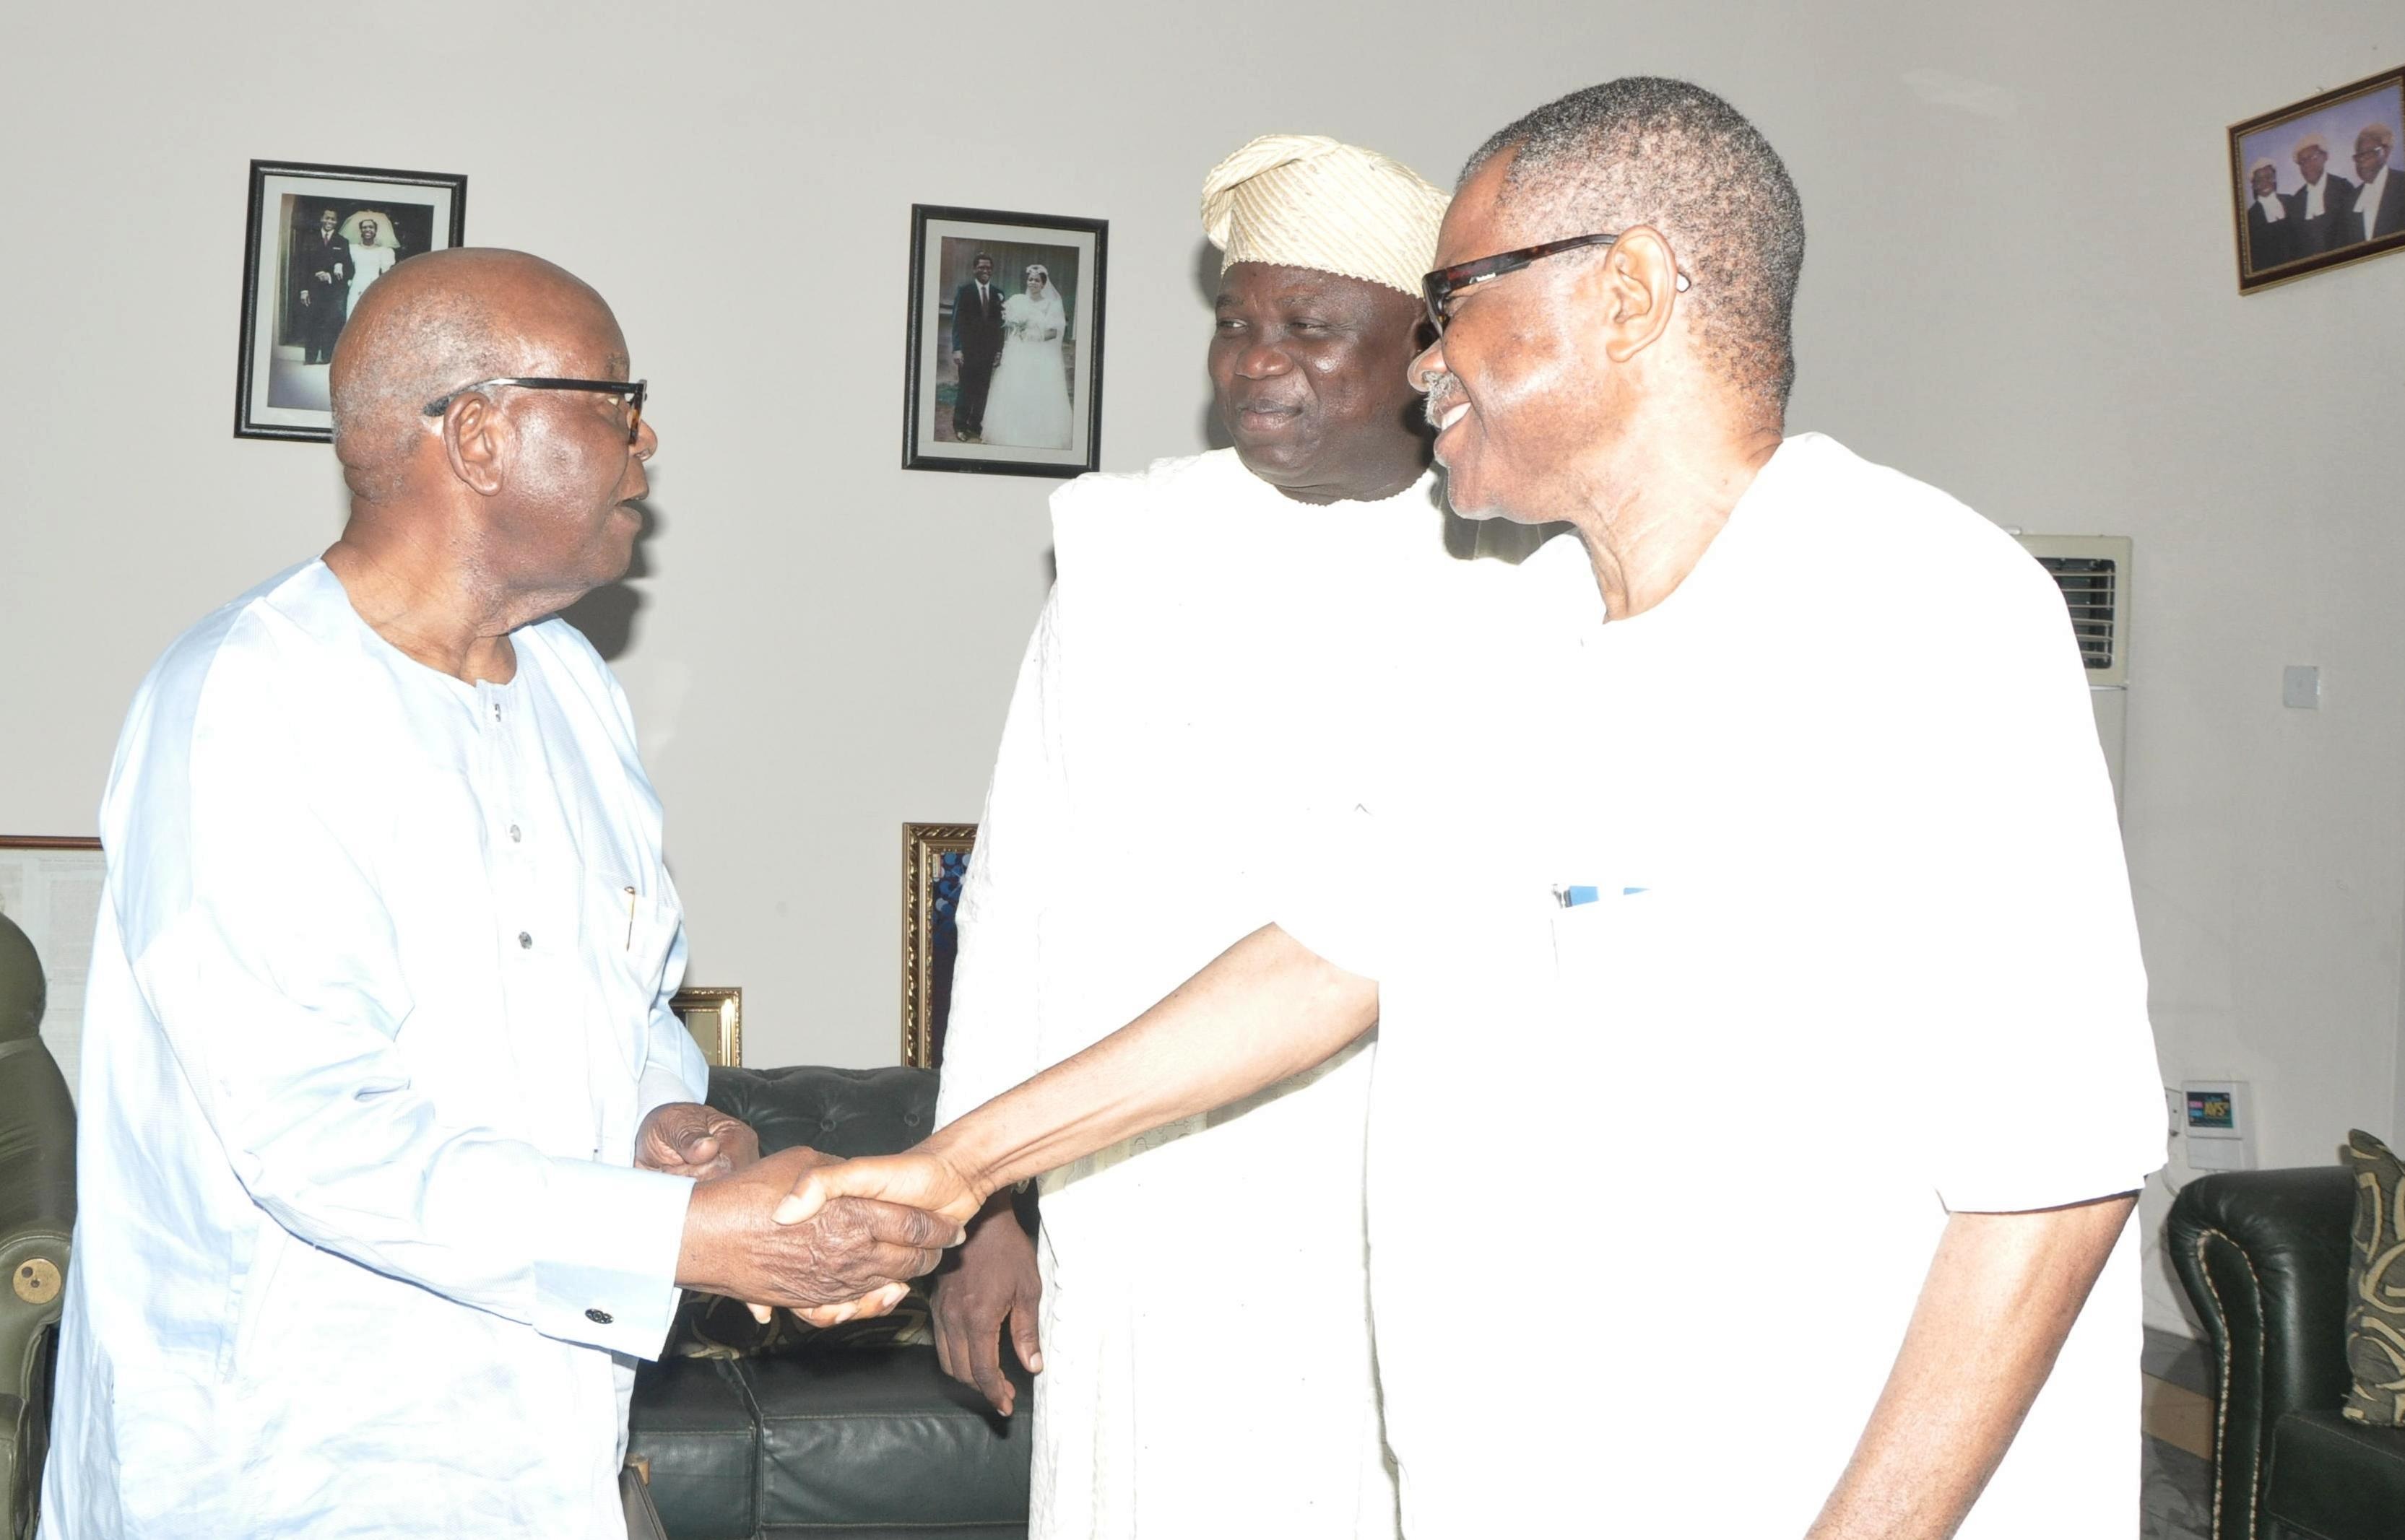 Lagos State Governor, Mr. Akinwunmi Ambode (middle) with Afenifere Leader,  Pa Olaniwun Ajayi (left) and Vice Chairman, South West APC, Chief Pius Akinyele during a courtesy visit to Pa Olaniwun at his Ijebu-Ishara residence in Ogun State, on Sunday, September 20, 2015.